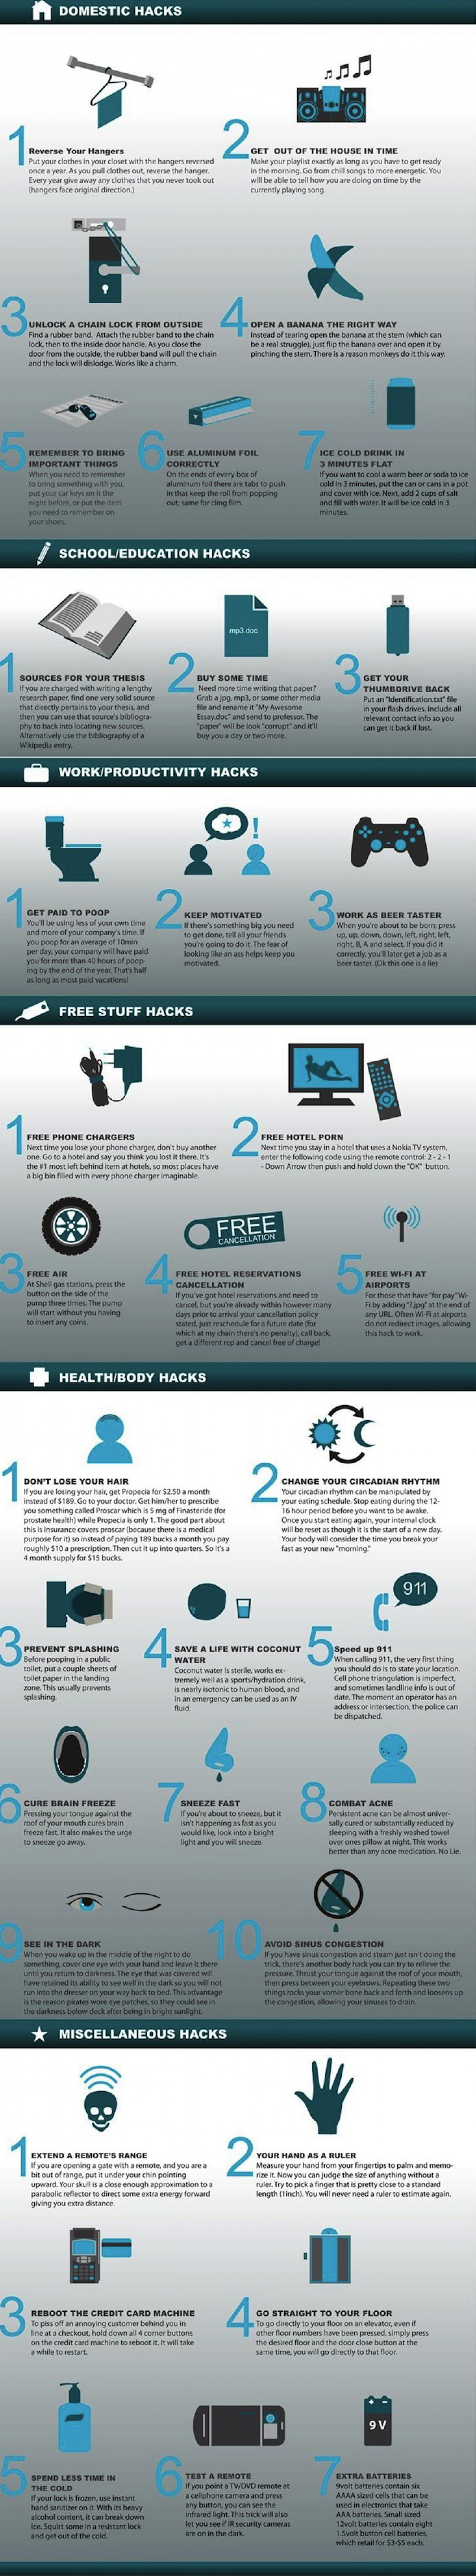 35 Life Hacks You Should Know Infographic